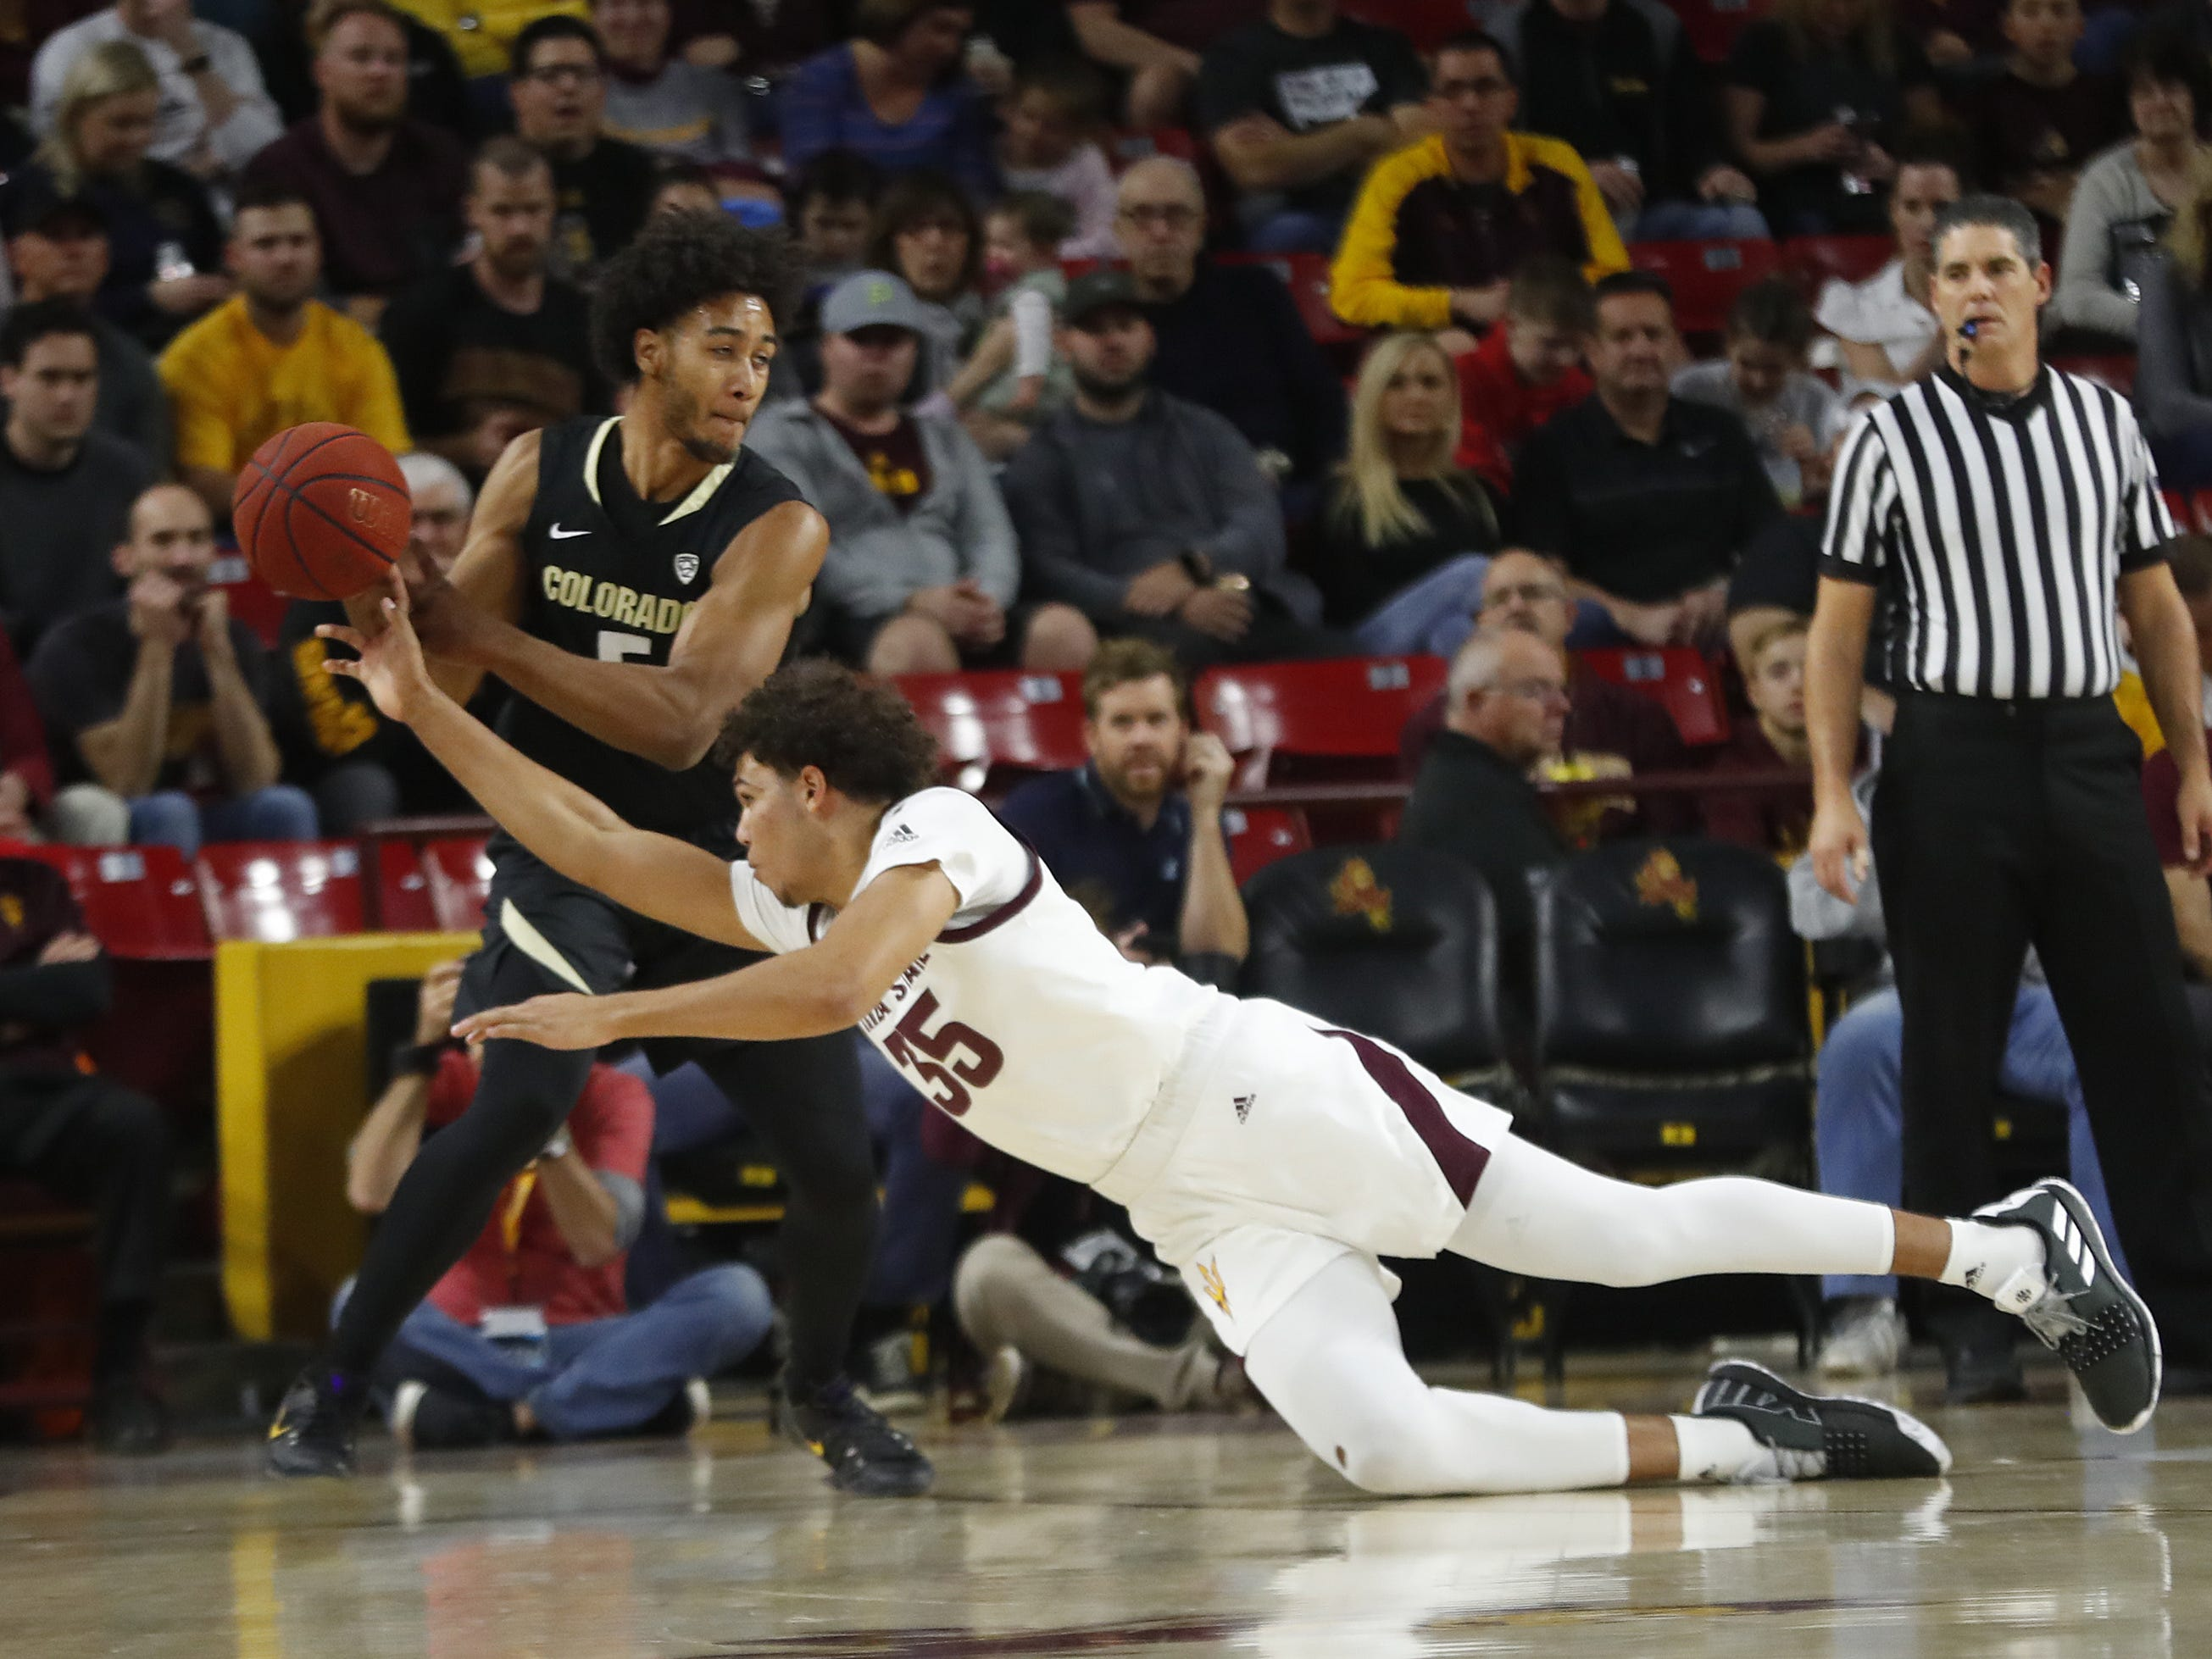 ASU's Taeshon Cherry (35) dives forcing a steal on Colorado's D'Shawn Schwartz (5) during the first half at Wells Fargo Arena in Tempe, Ariz. on January 5, 2019.